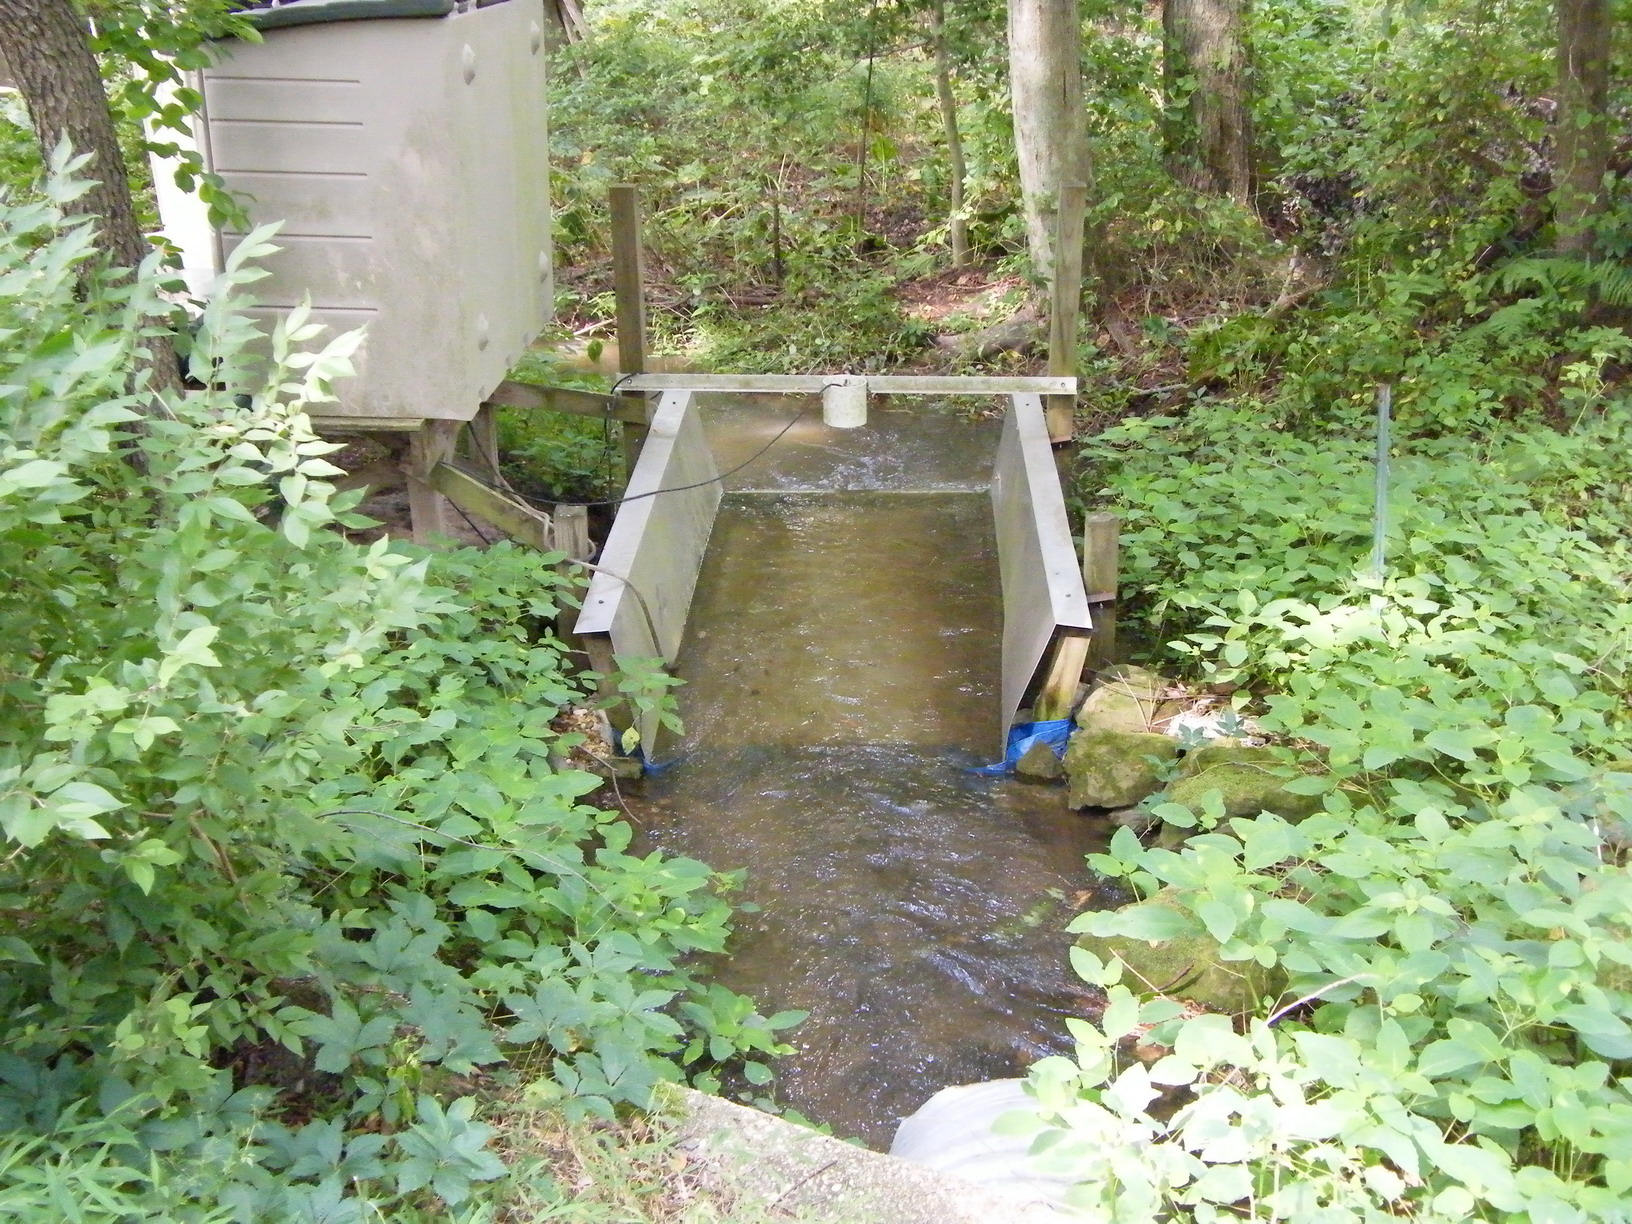 A flume to measure stream flow and to sample water at the Beaver Dam Tributary Creek at the Beltsville OPE3 site.  Photo by A.K. Guber.